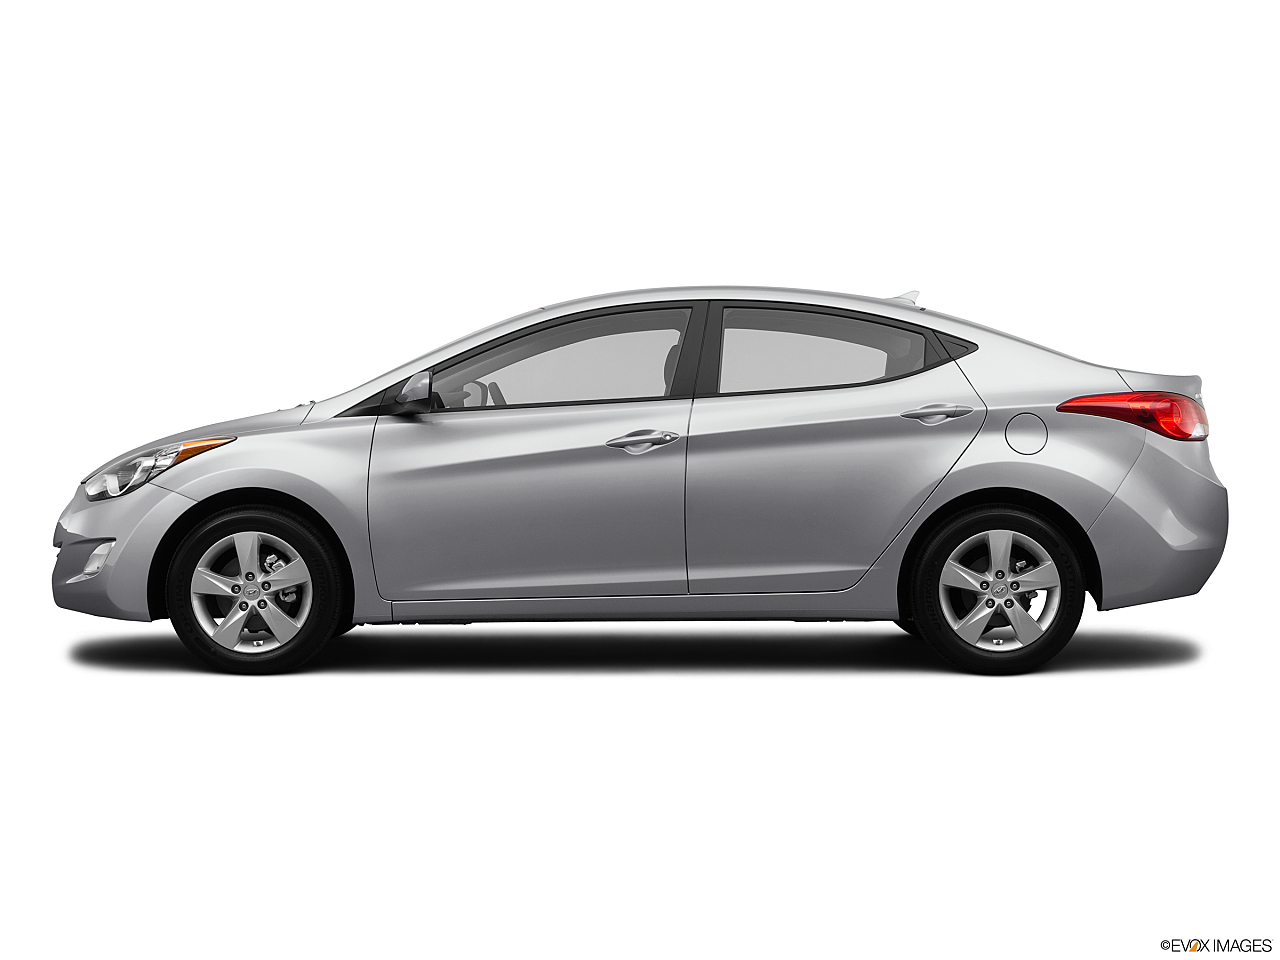 2012 hyundai elantra at triad auto group nc of mocksville - 2012 hyundai elantra exterior colors ...